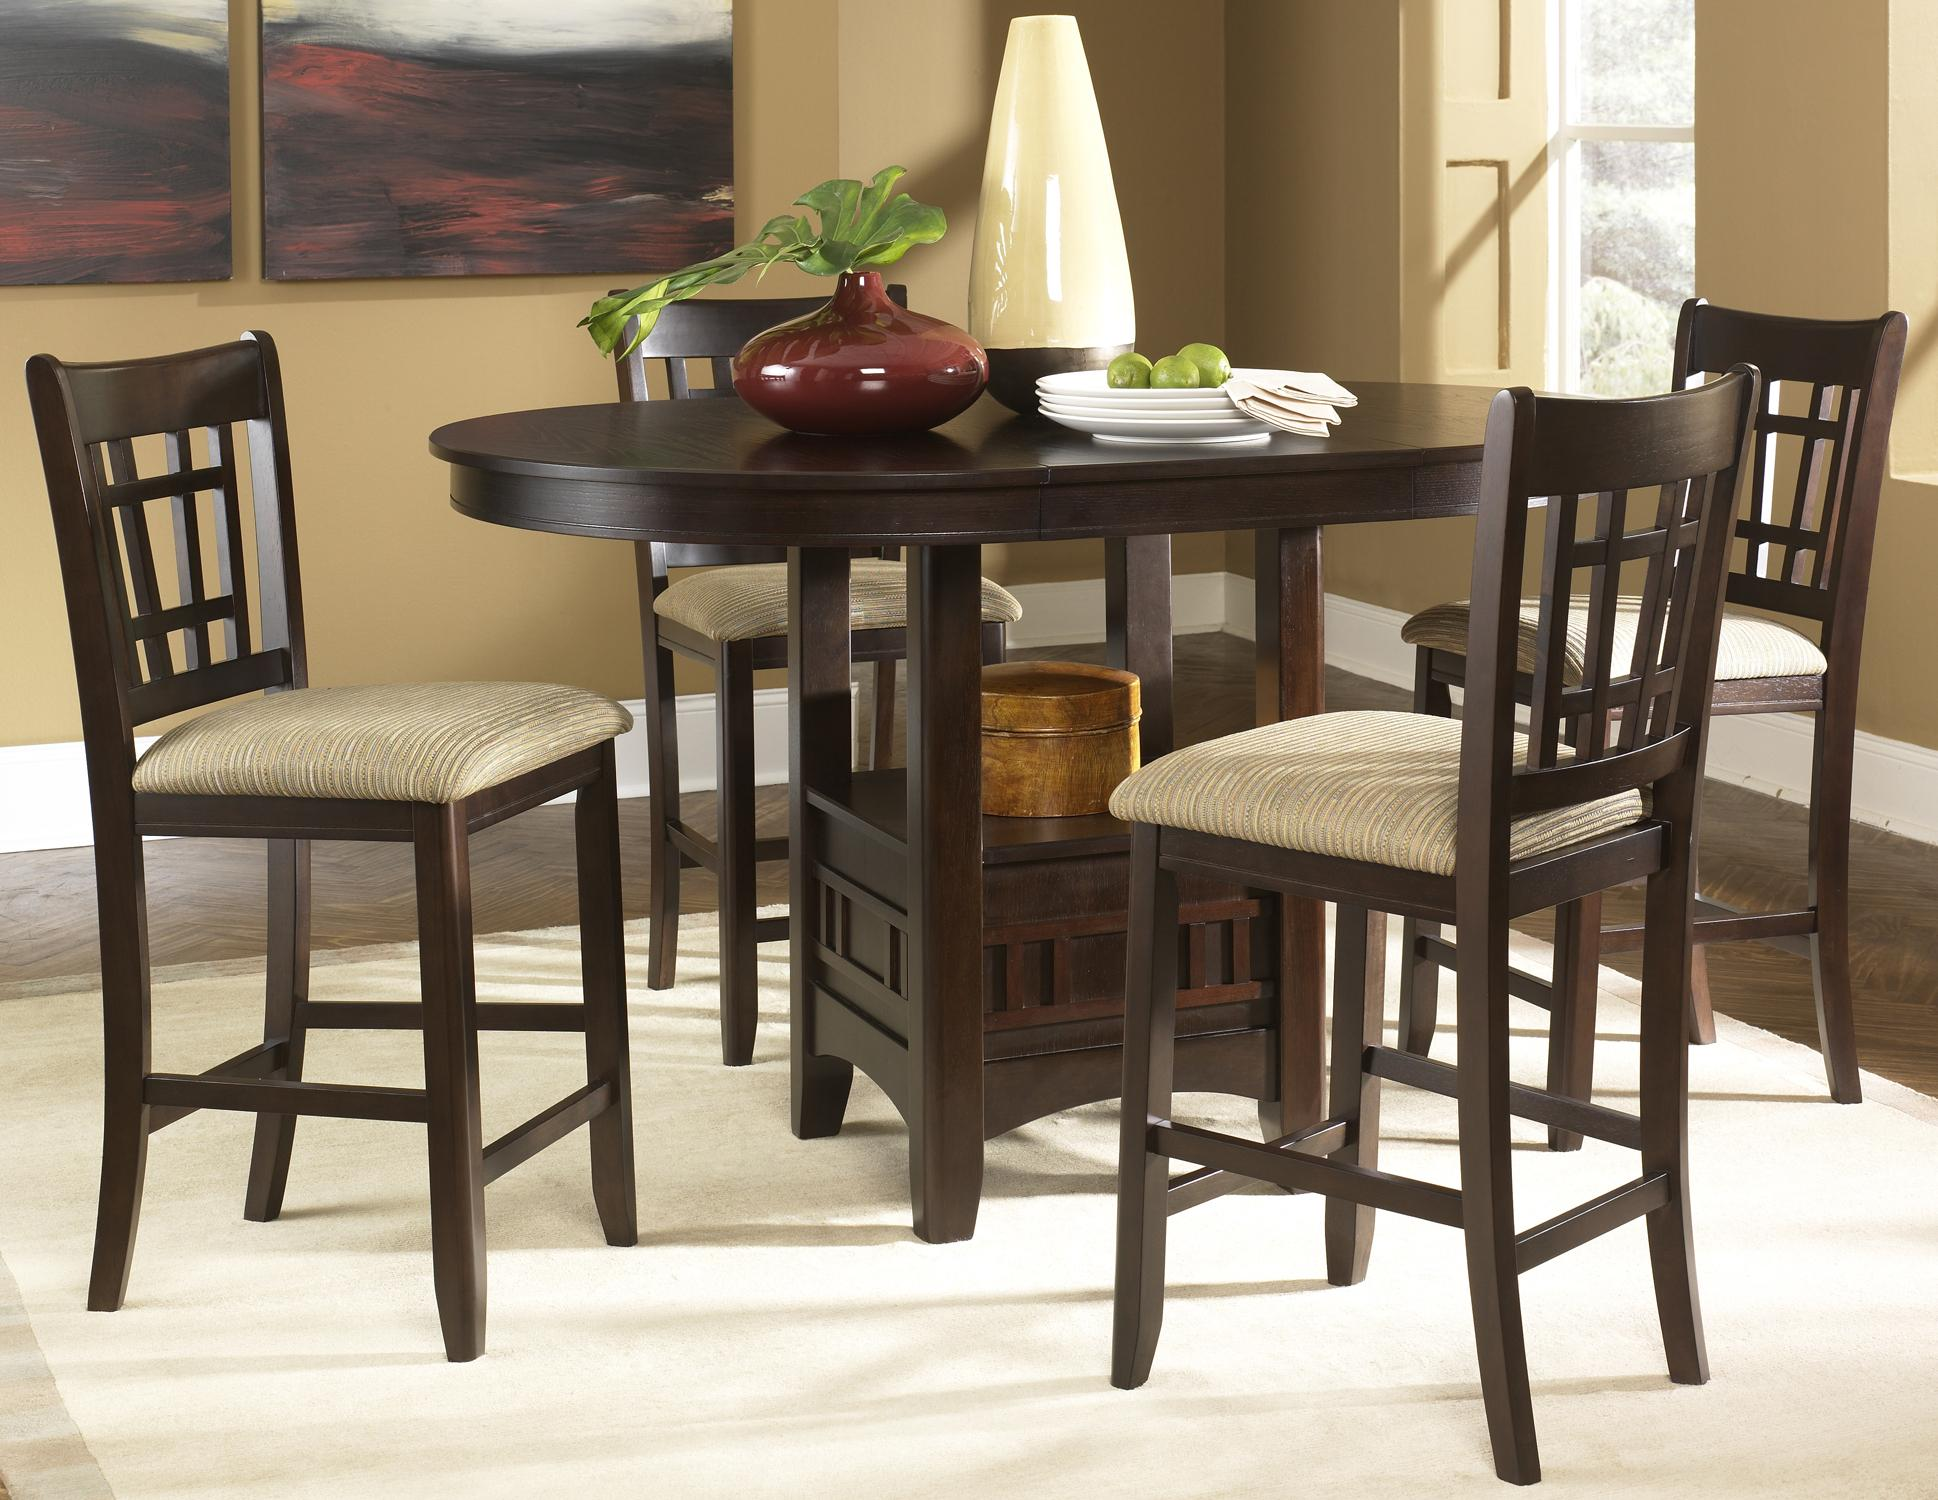 Oval Pub Table u0026 24 Inch Upholstered Bar Stool Set & Oval Pub Table u0026 24 Inch Upholstered Bar Stool Set by Liberty ...